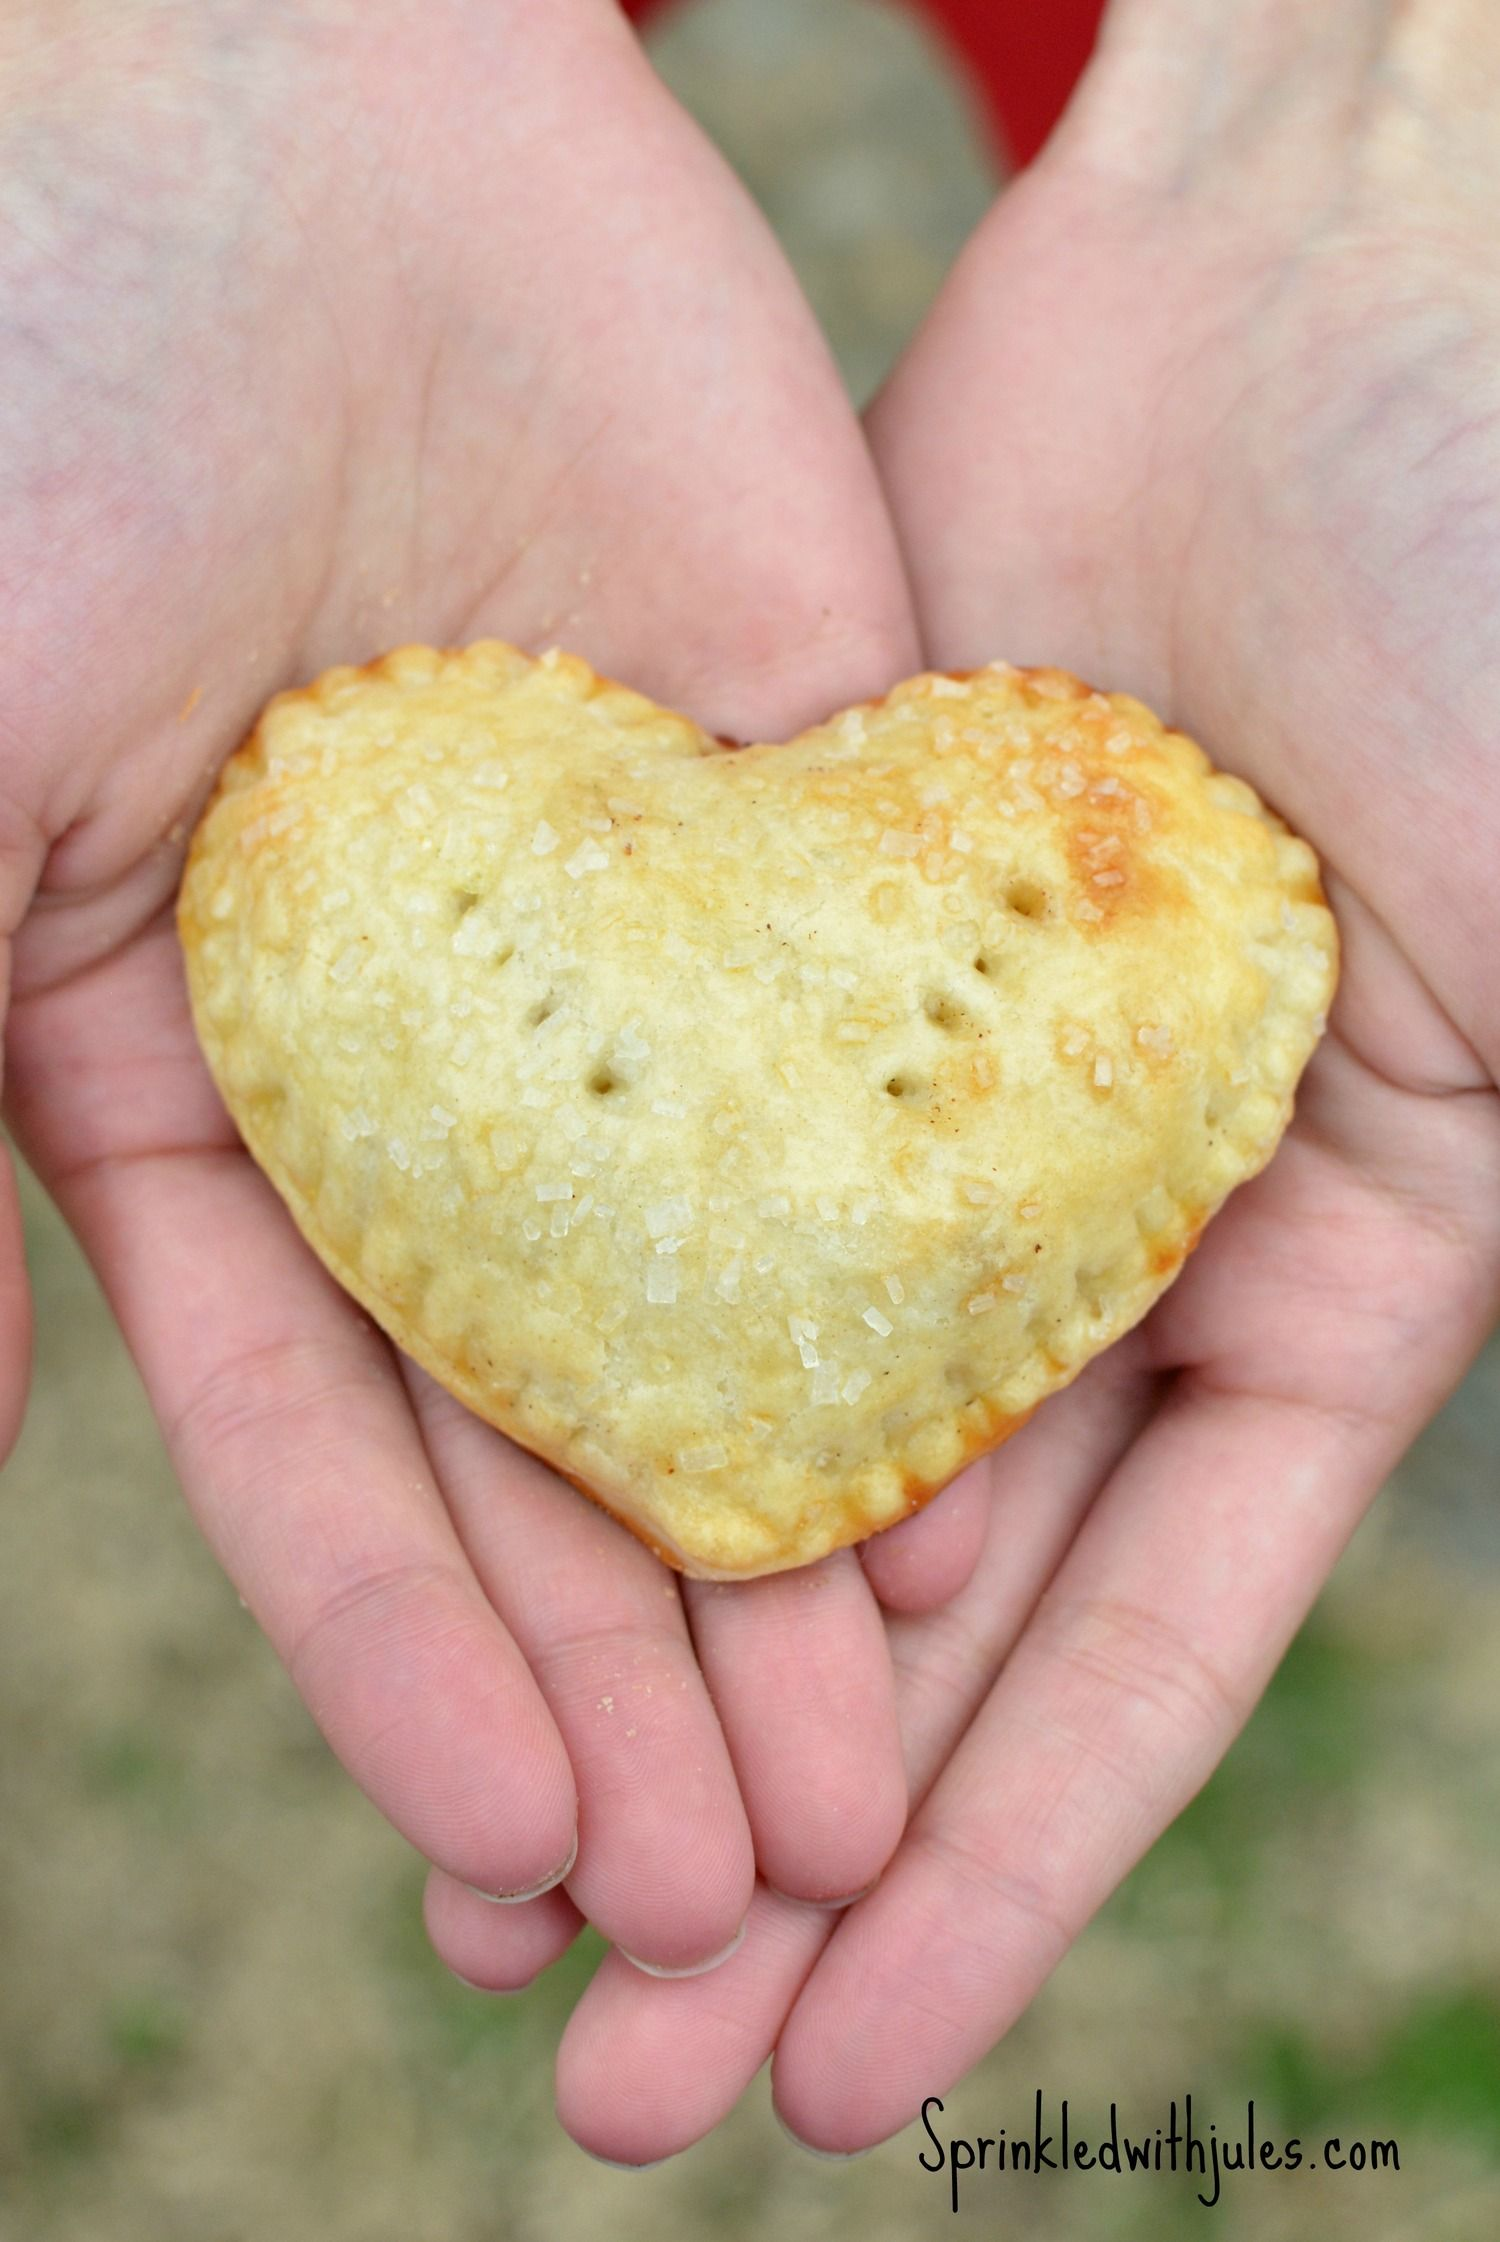 This pie crust is the best-flakey and buttery! Apple Hand Pies are perfect for #ValentinesDay #pie #handpies